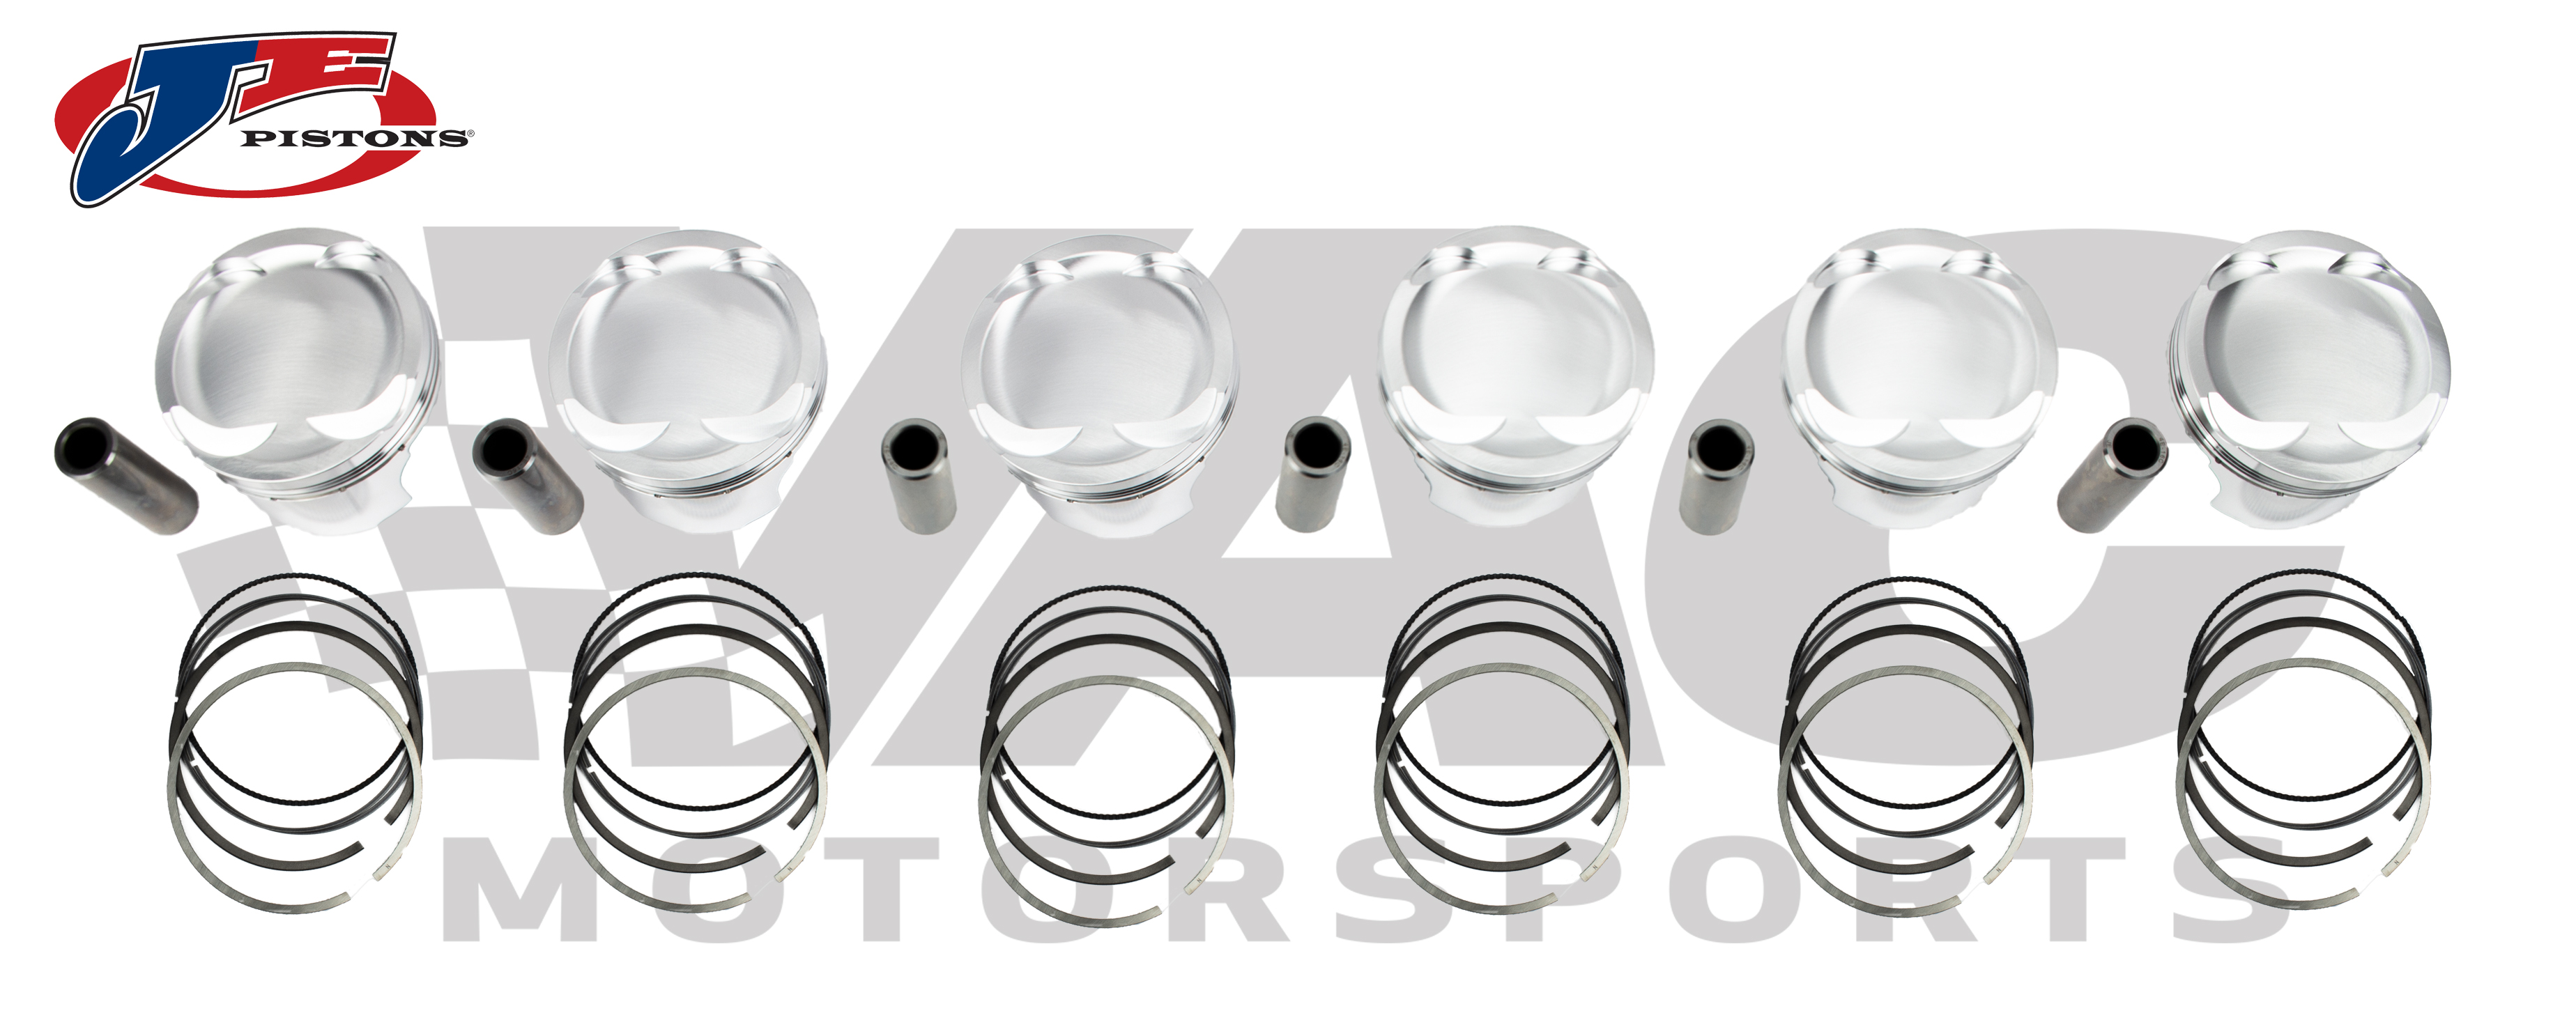 JE Pistons Forged Piston Set (BMW N52) THUMBNAIL